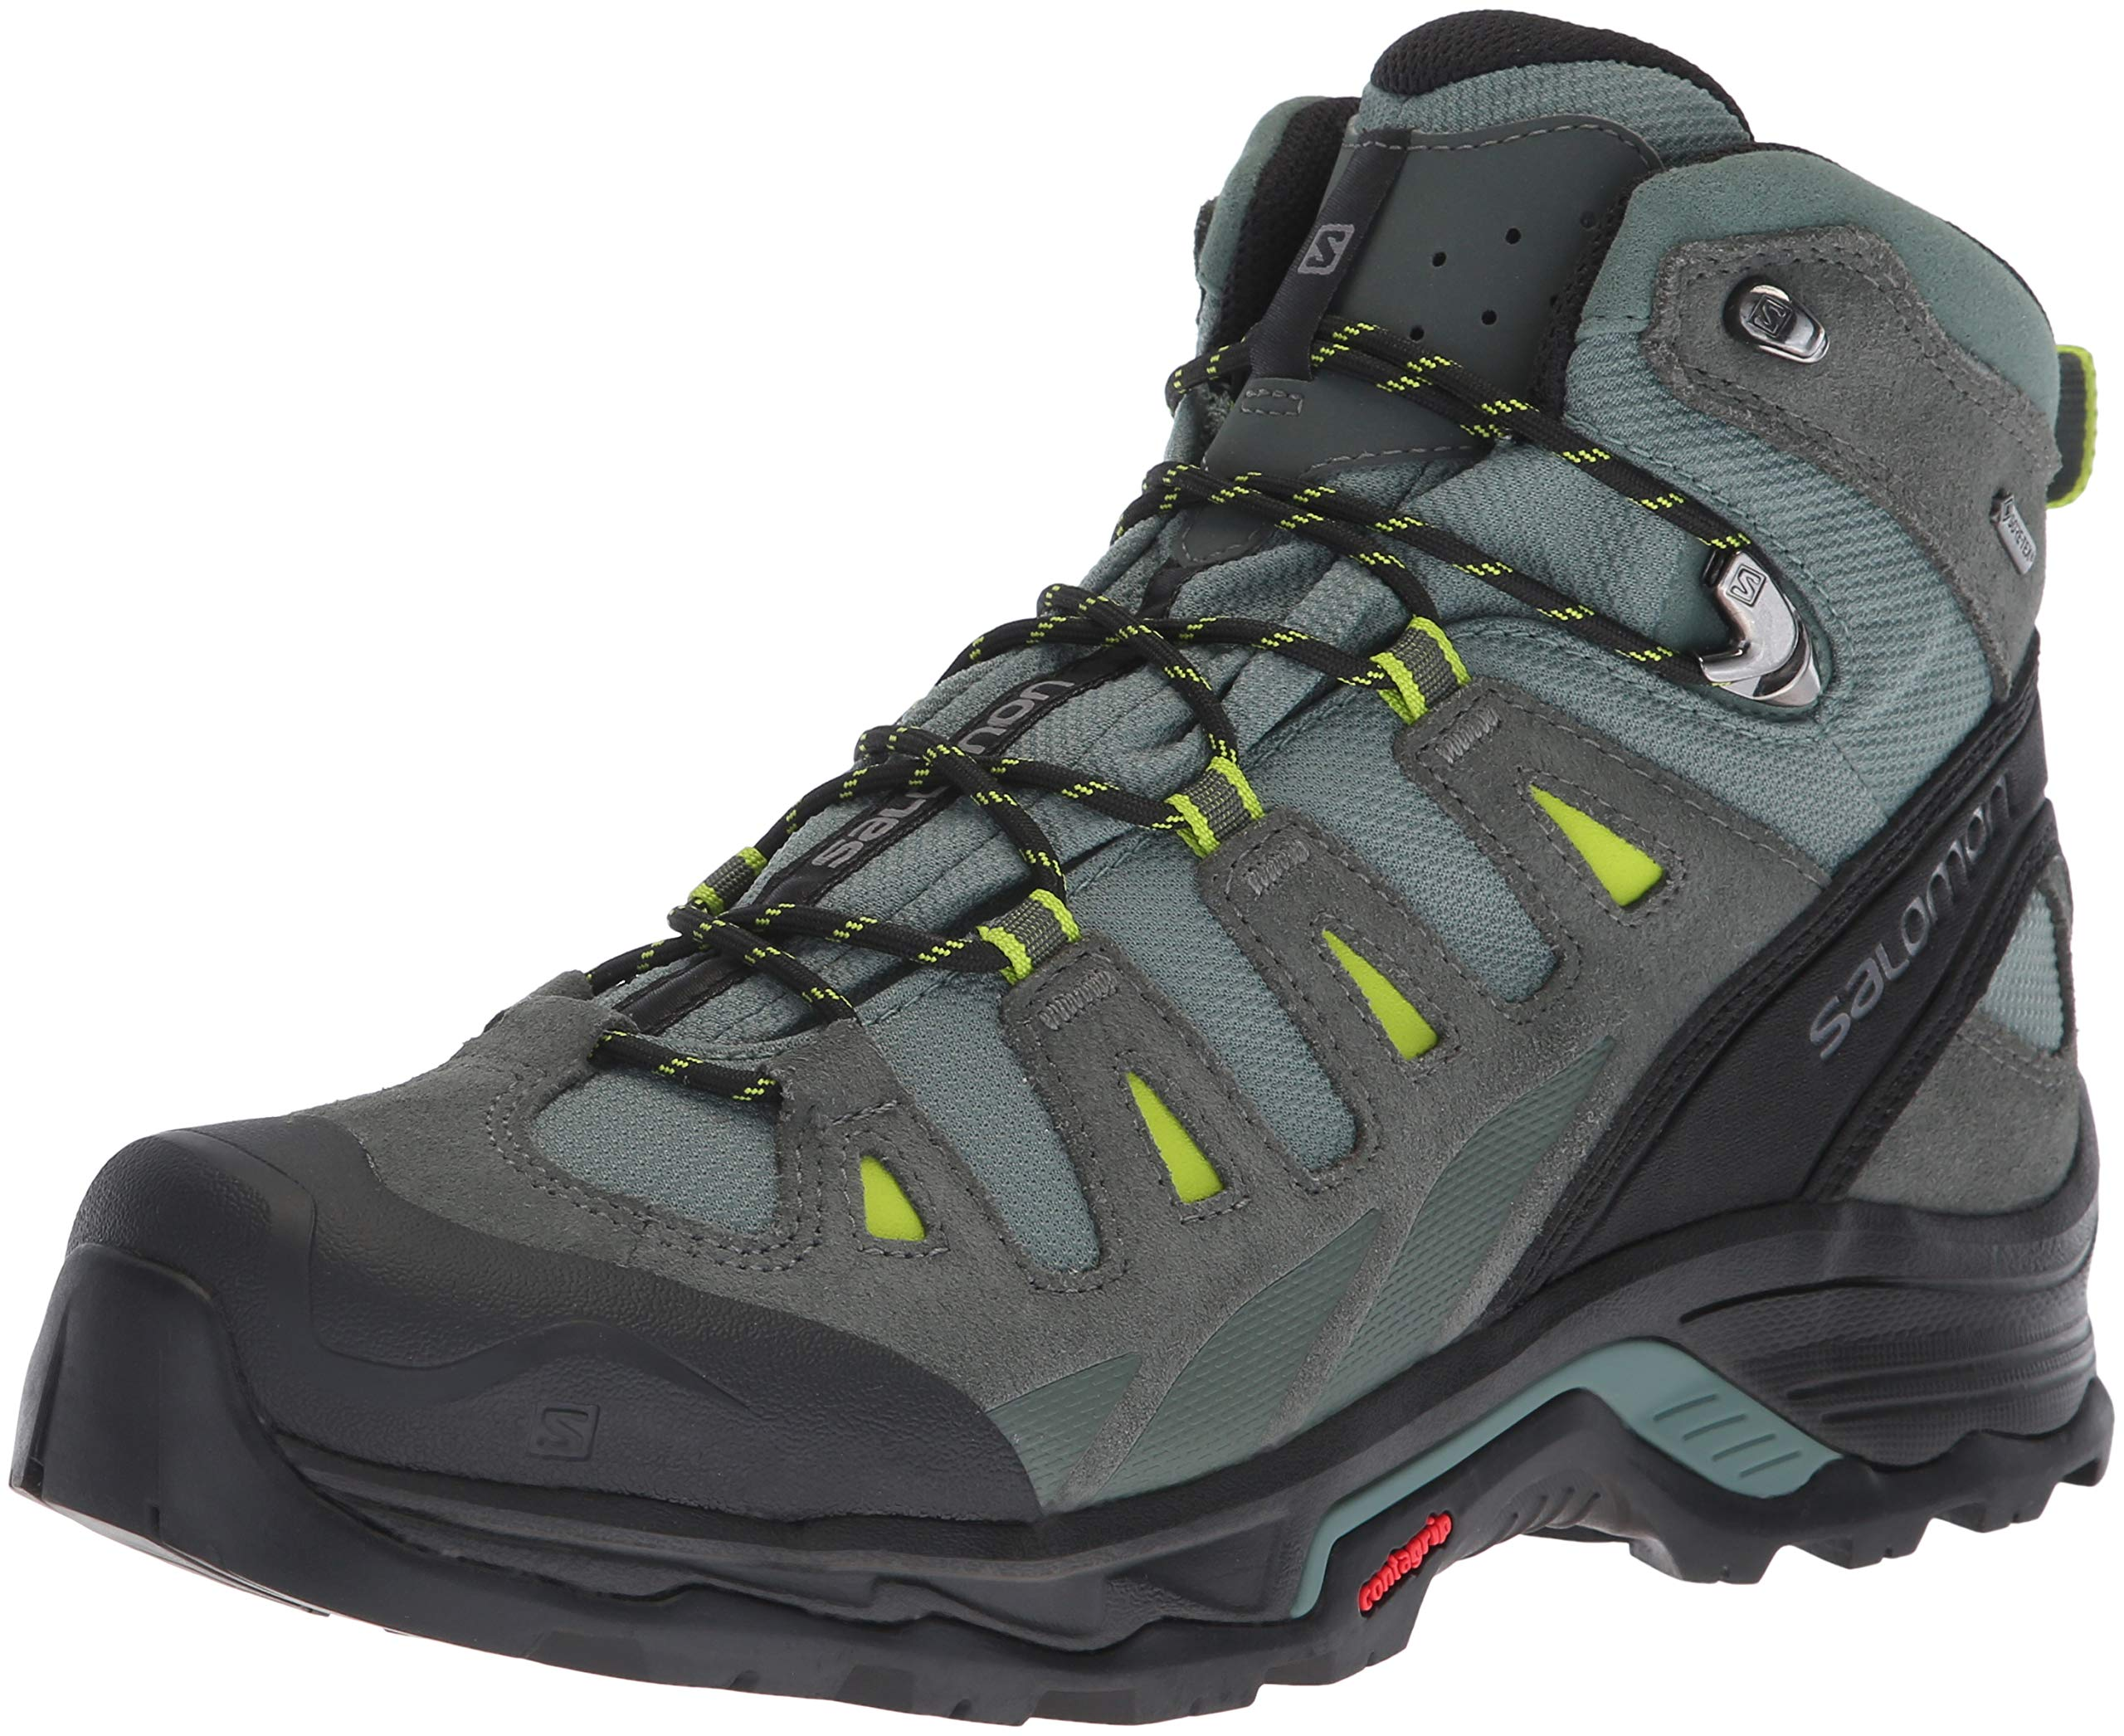 SALOMON Men's Quest Prime GTX Backpacking Boots, Balsam Green/Urban Chic/Lime Green, 10.5 by SALOMON